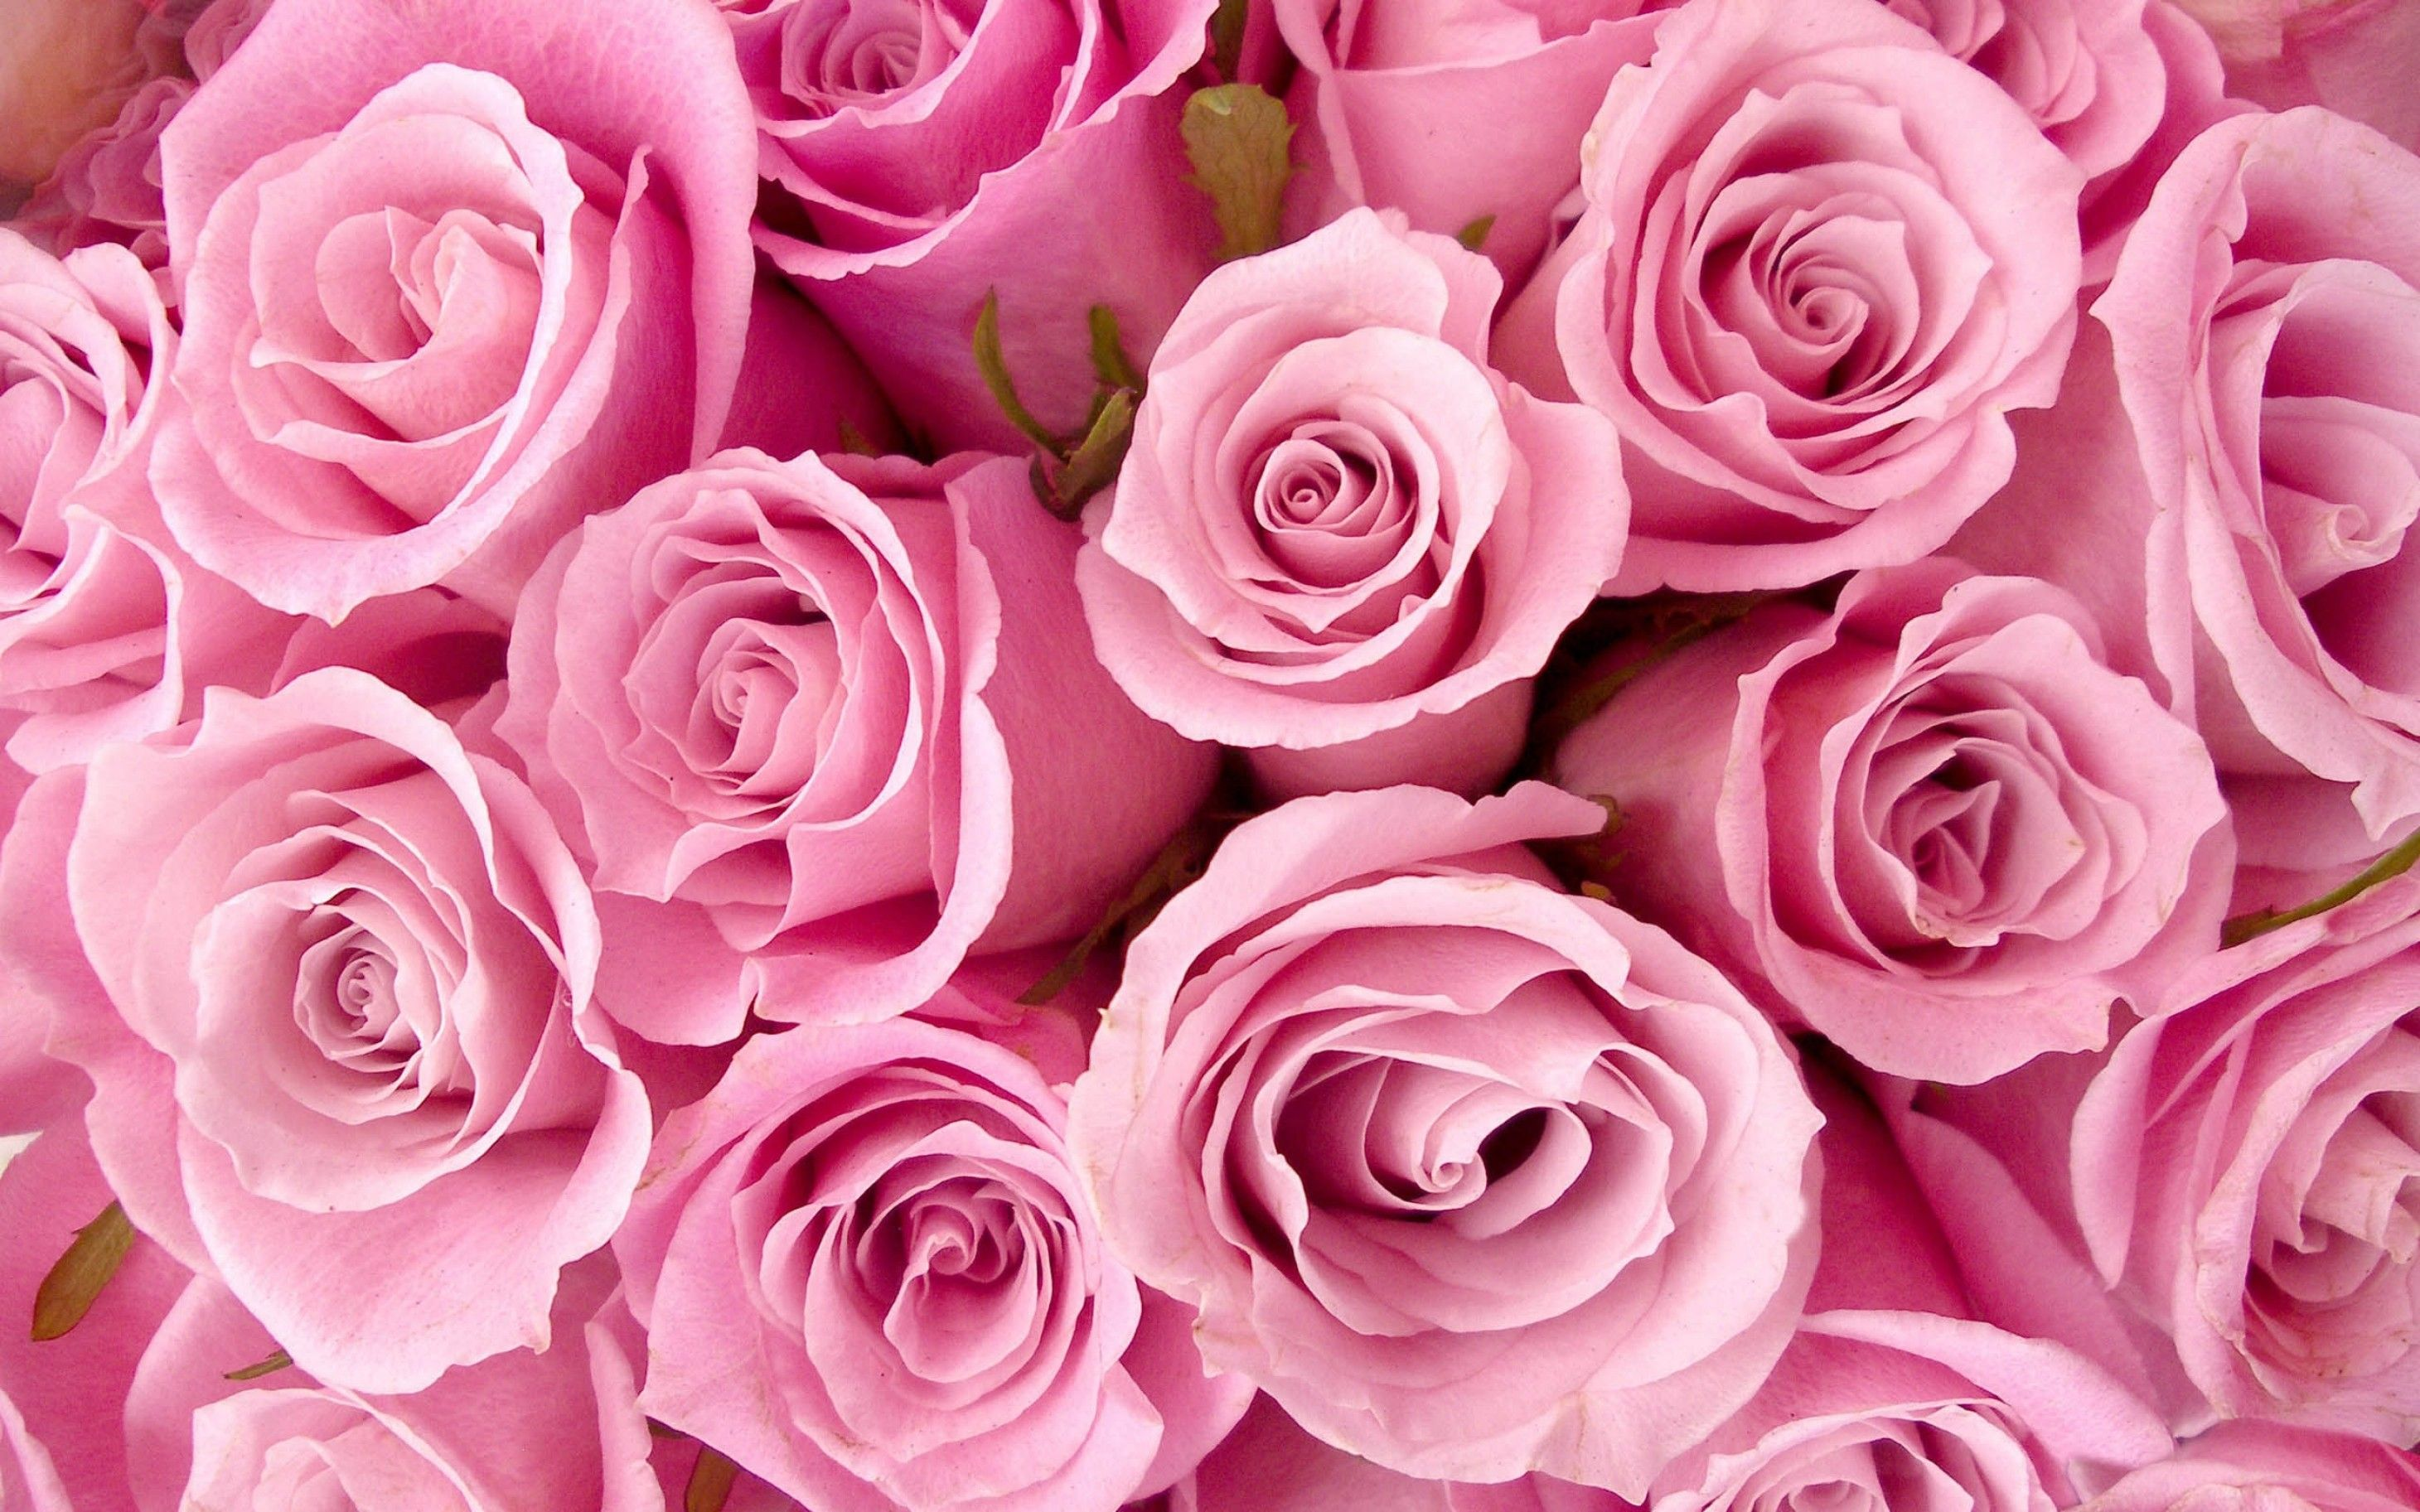 Baby Pink Roses Pink Roses Background Beautiful Pink Roses